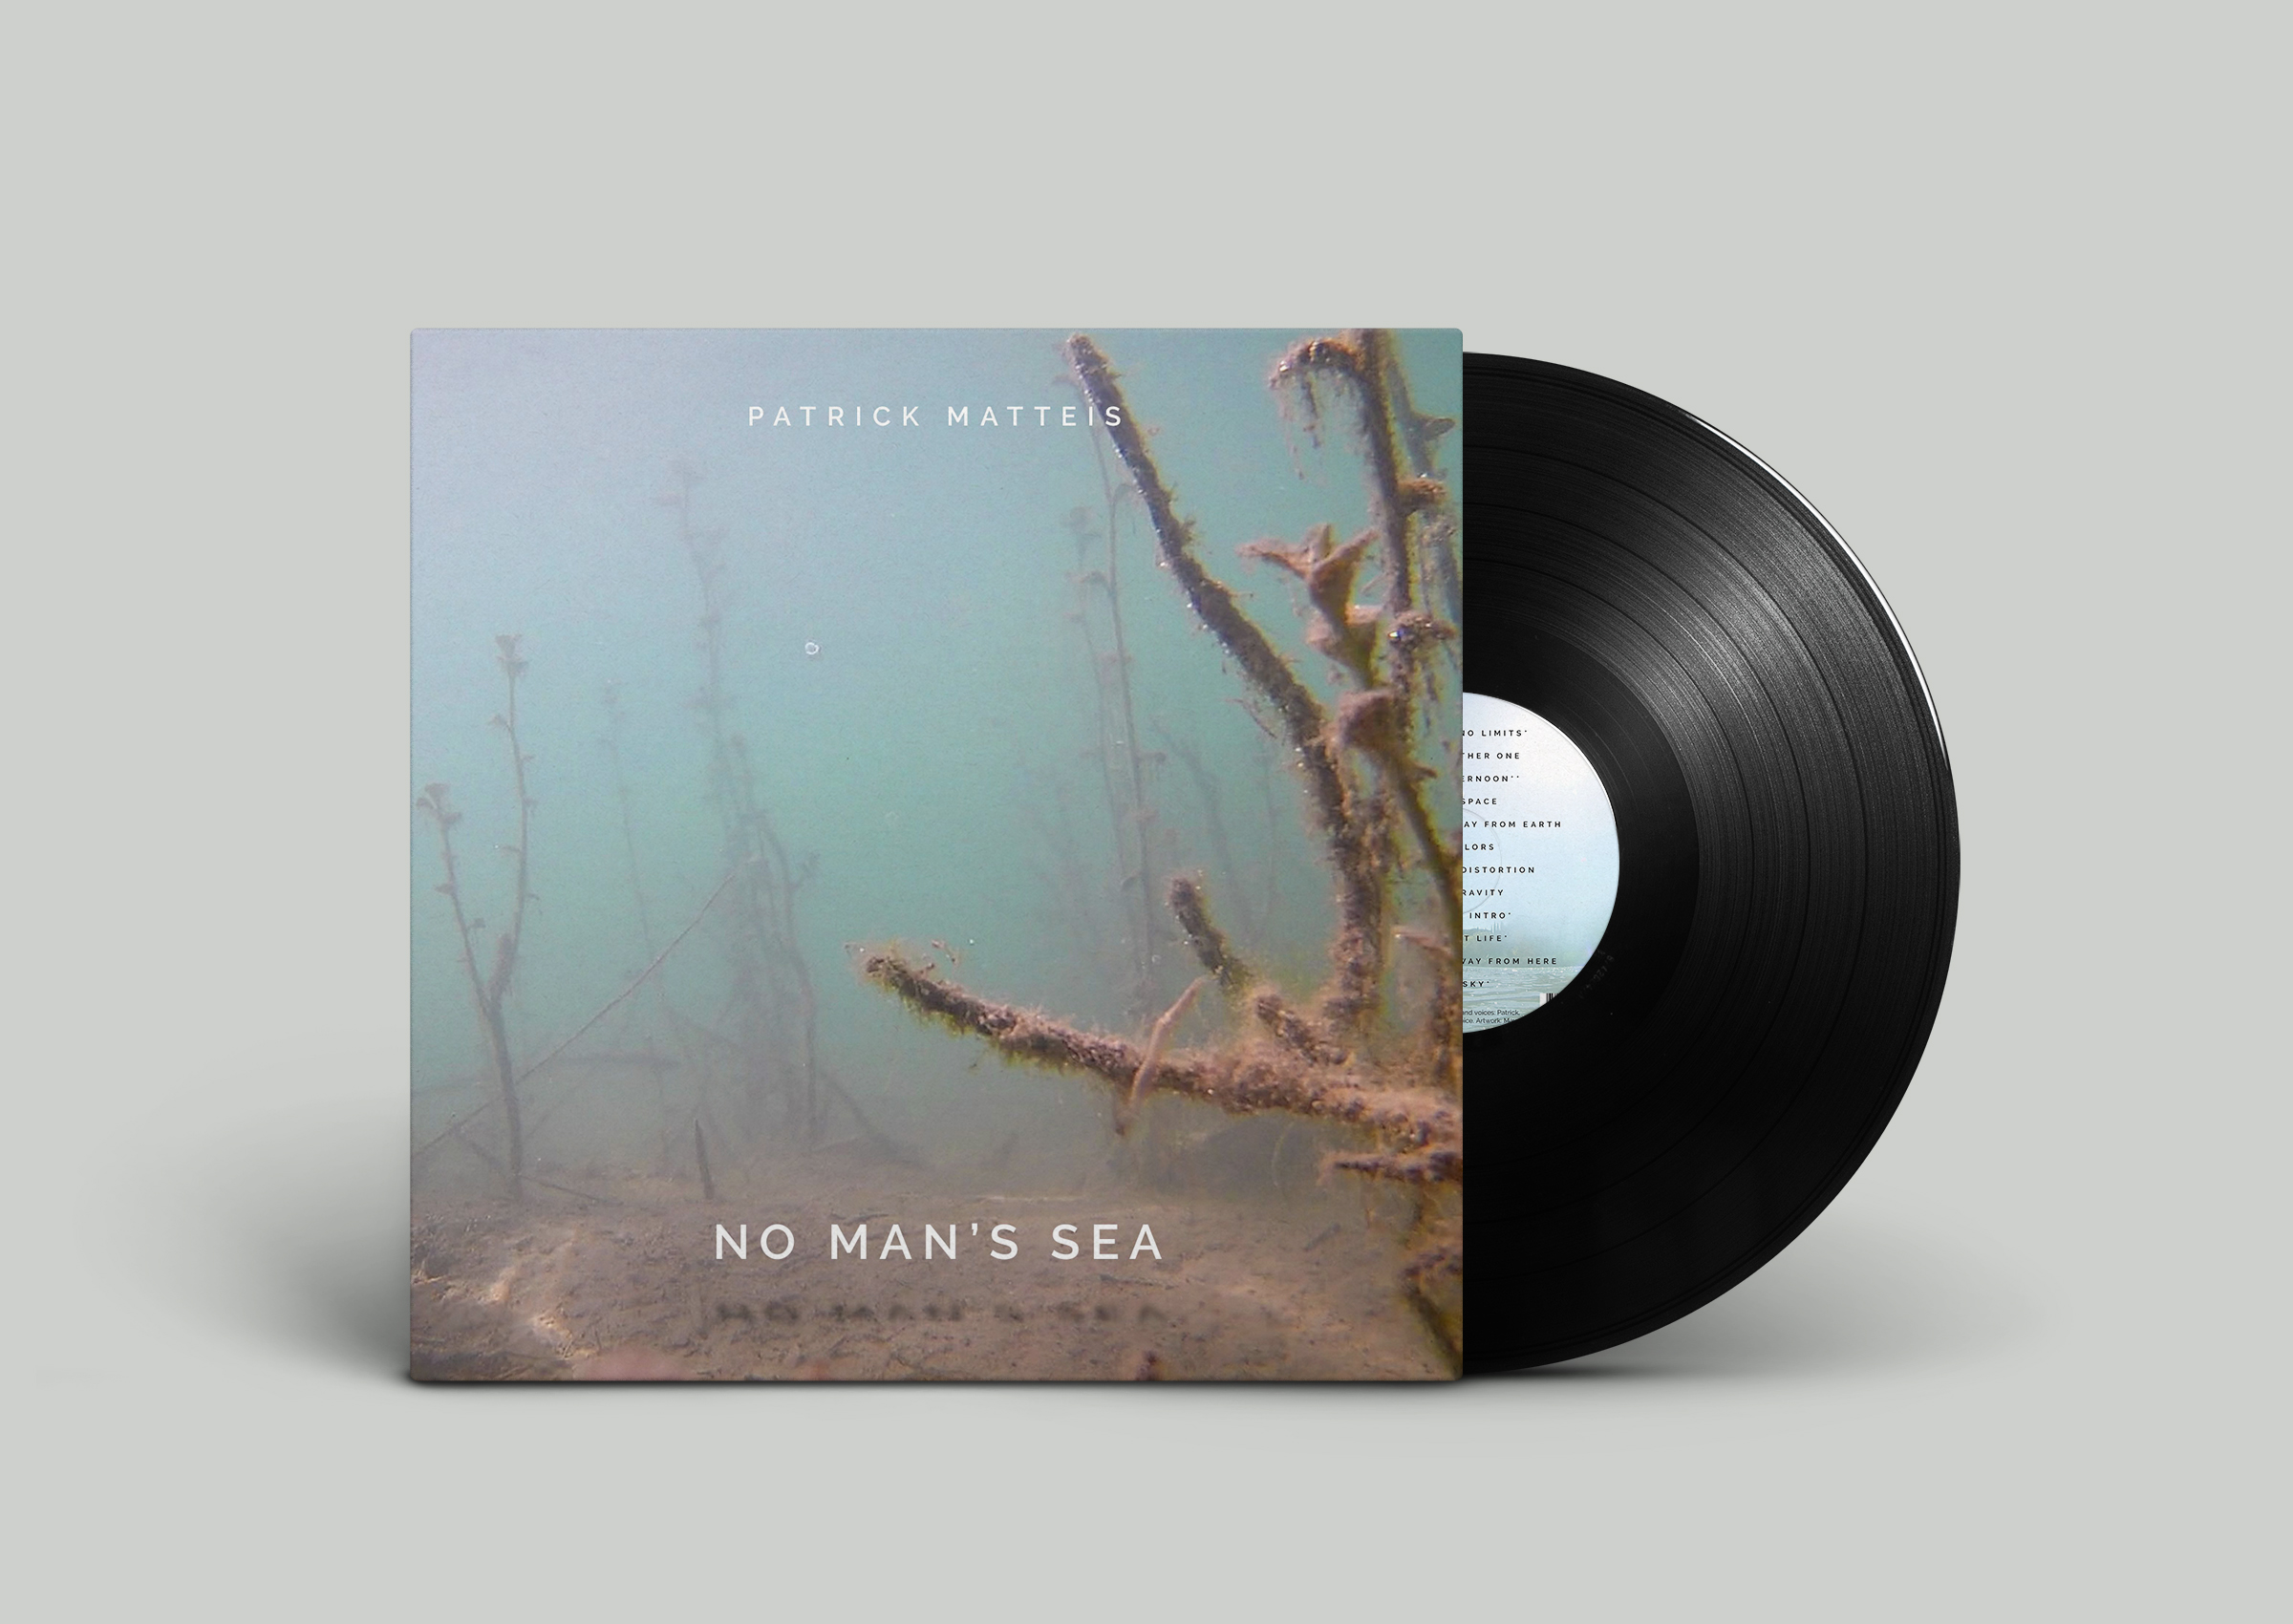 No Man's Sea